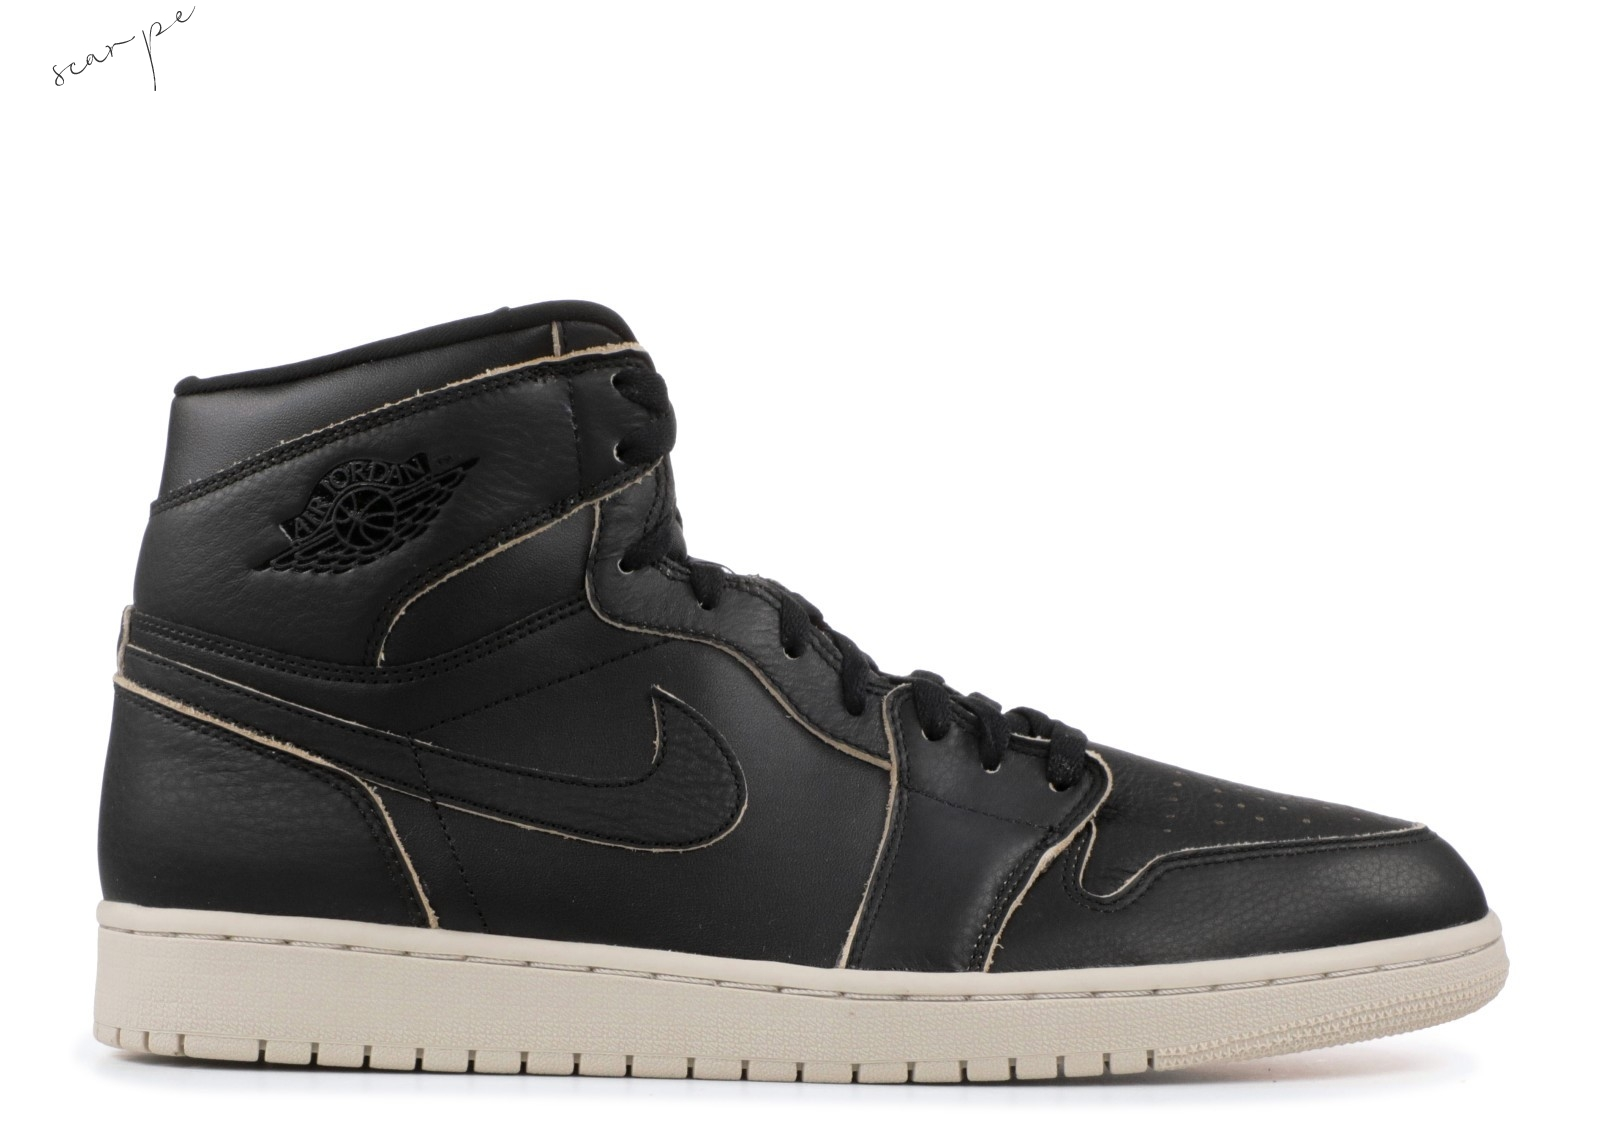 Vendite Air Jordan 1 Retro High Prem Nero (aa3993-021) Scarpe Online